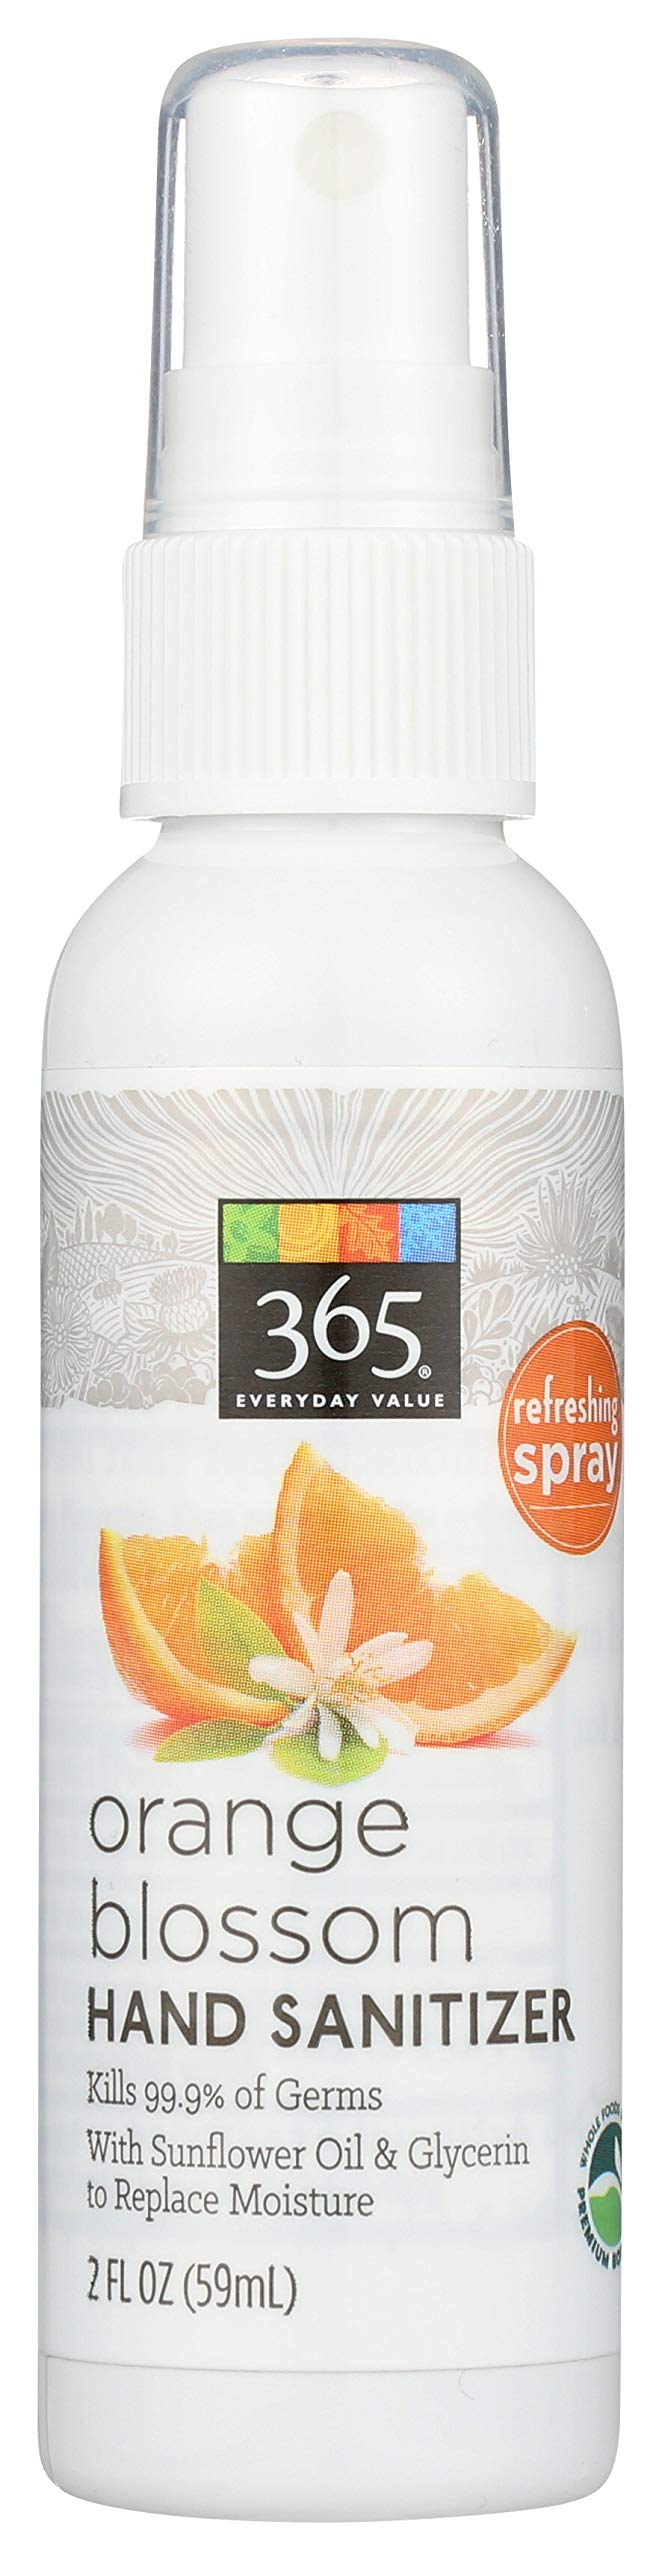 365 Everyday Value Hand Sanitizer Spray Orange Blossom 2 Fl Oz